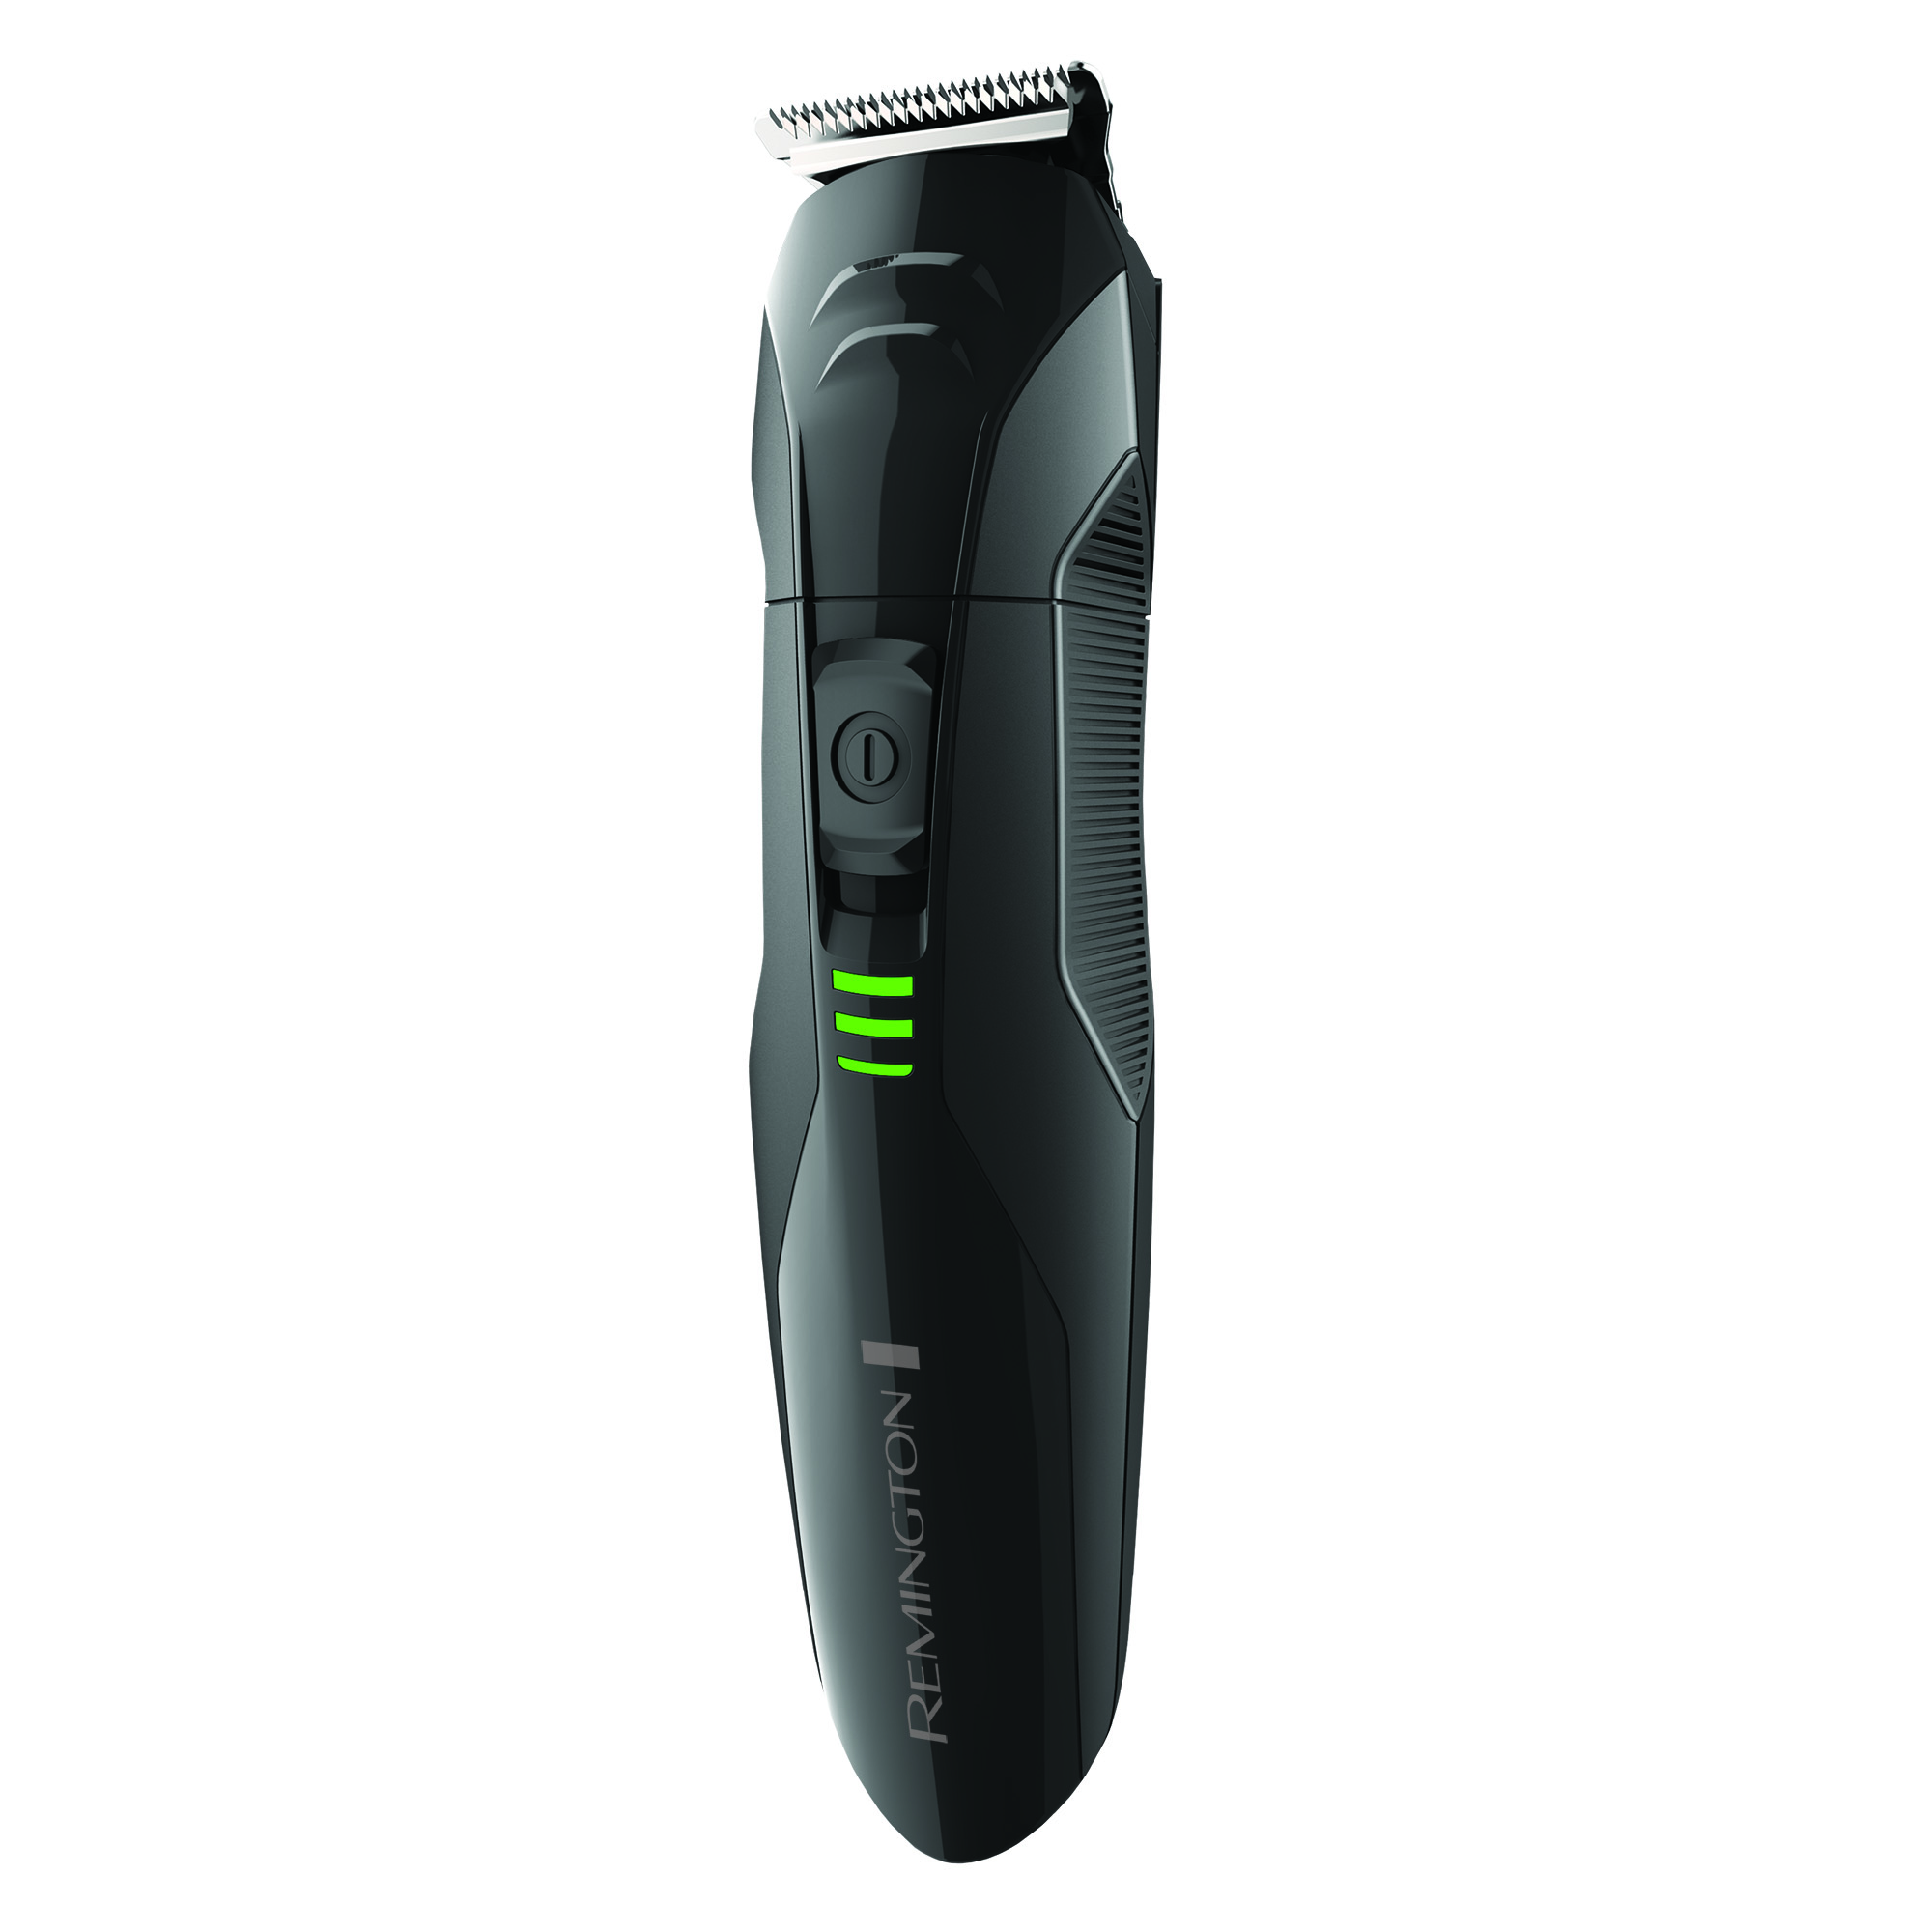 beard trimmer customer reviews come scegliere attrezzature beard trimmer reviews my panasonic. Black Bedroom Furniture Sets. Home Design Ideas